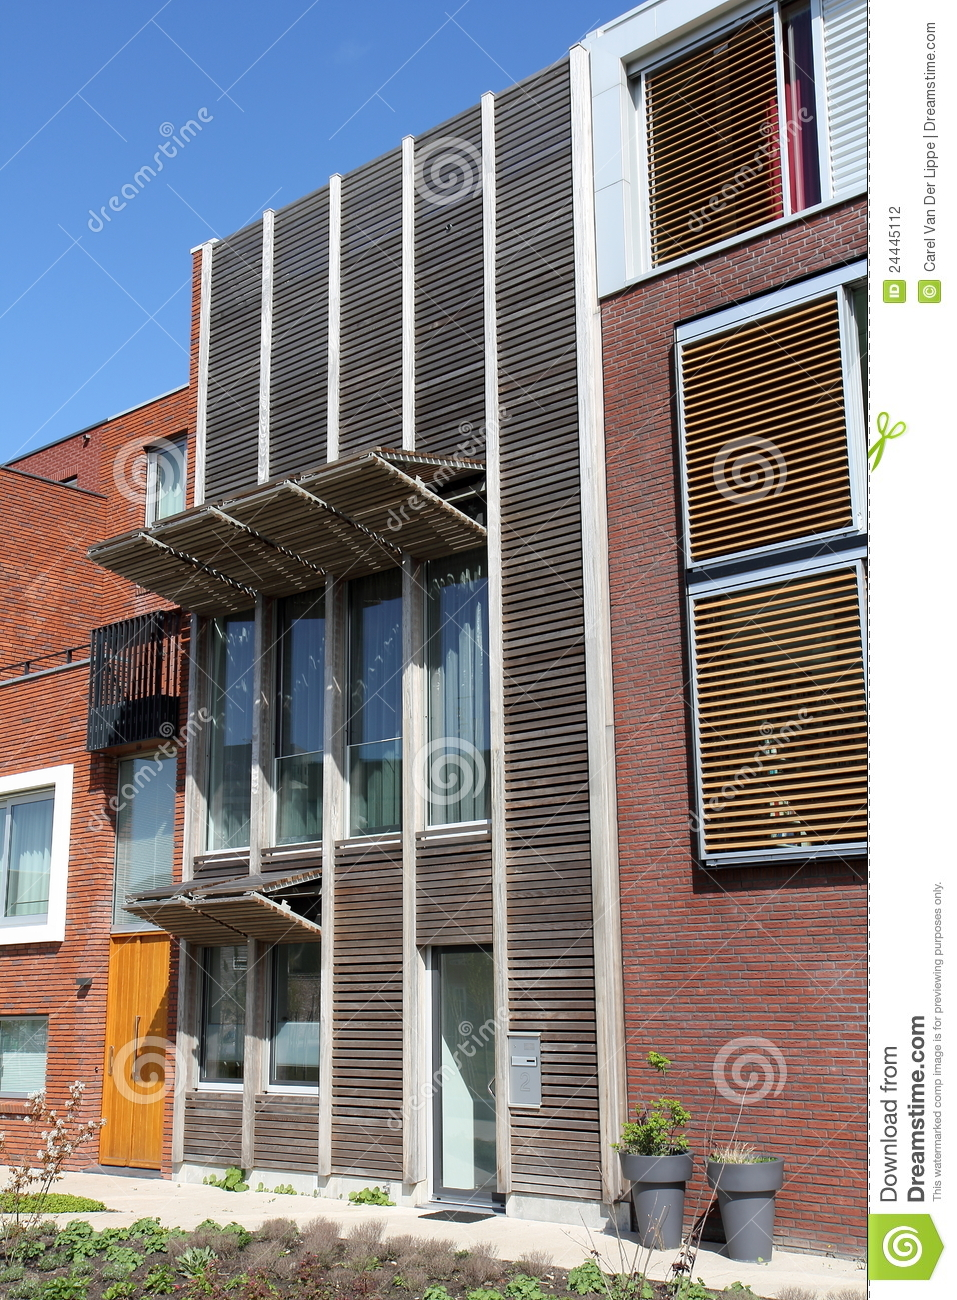 Dutch Curvature Modern House Has A Curved Construction To: Modern Dutch Home With Wooden Curved Facade Royalty-Free